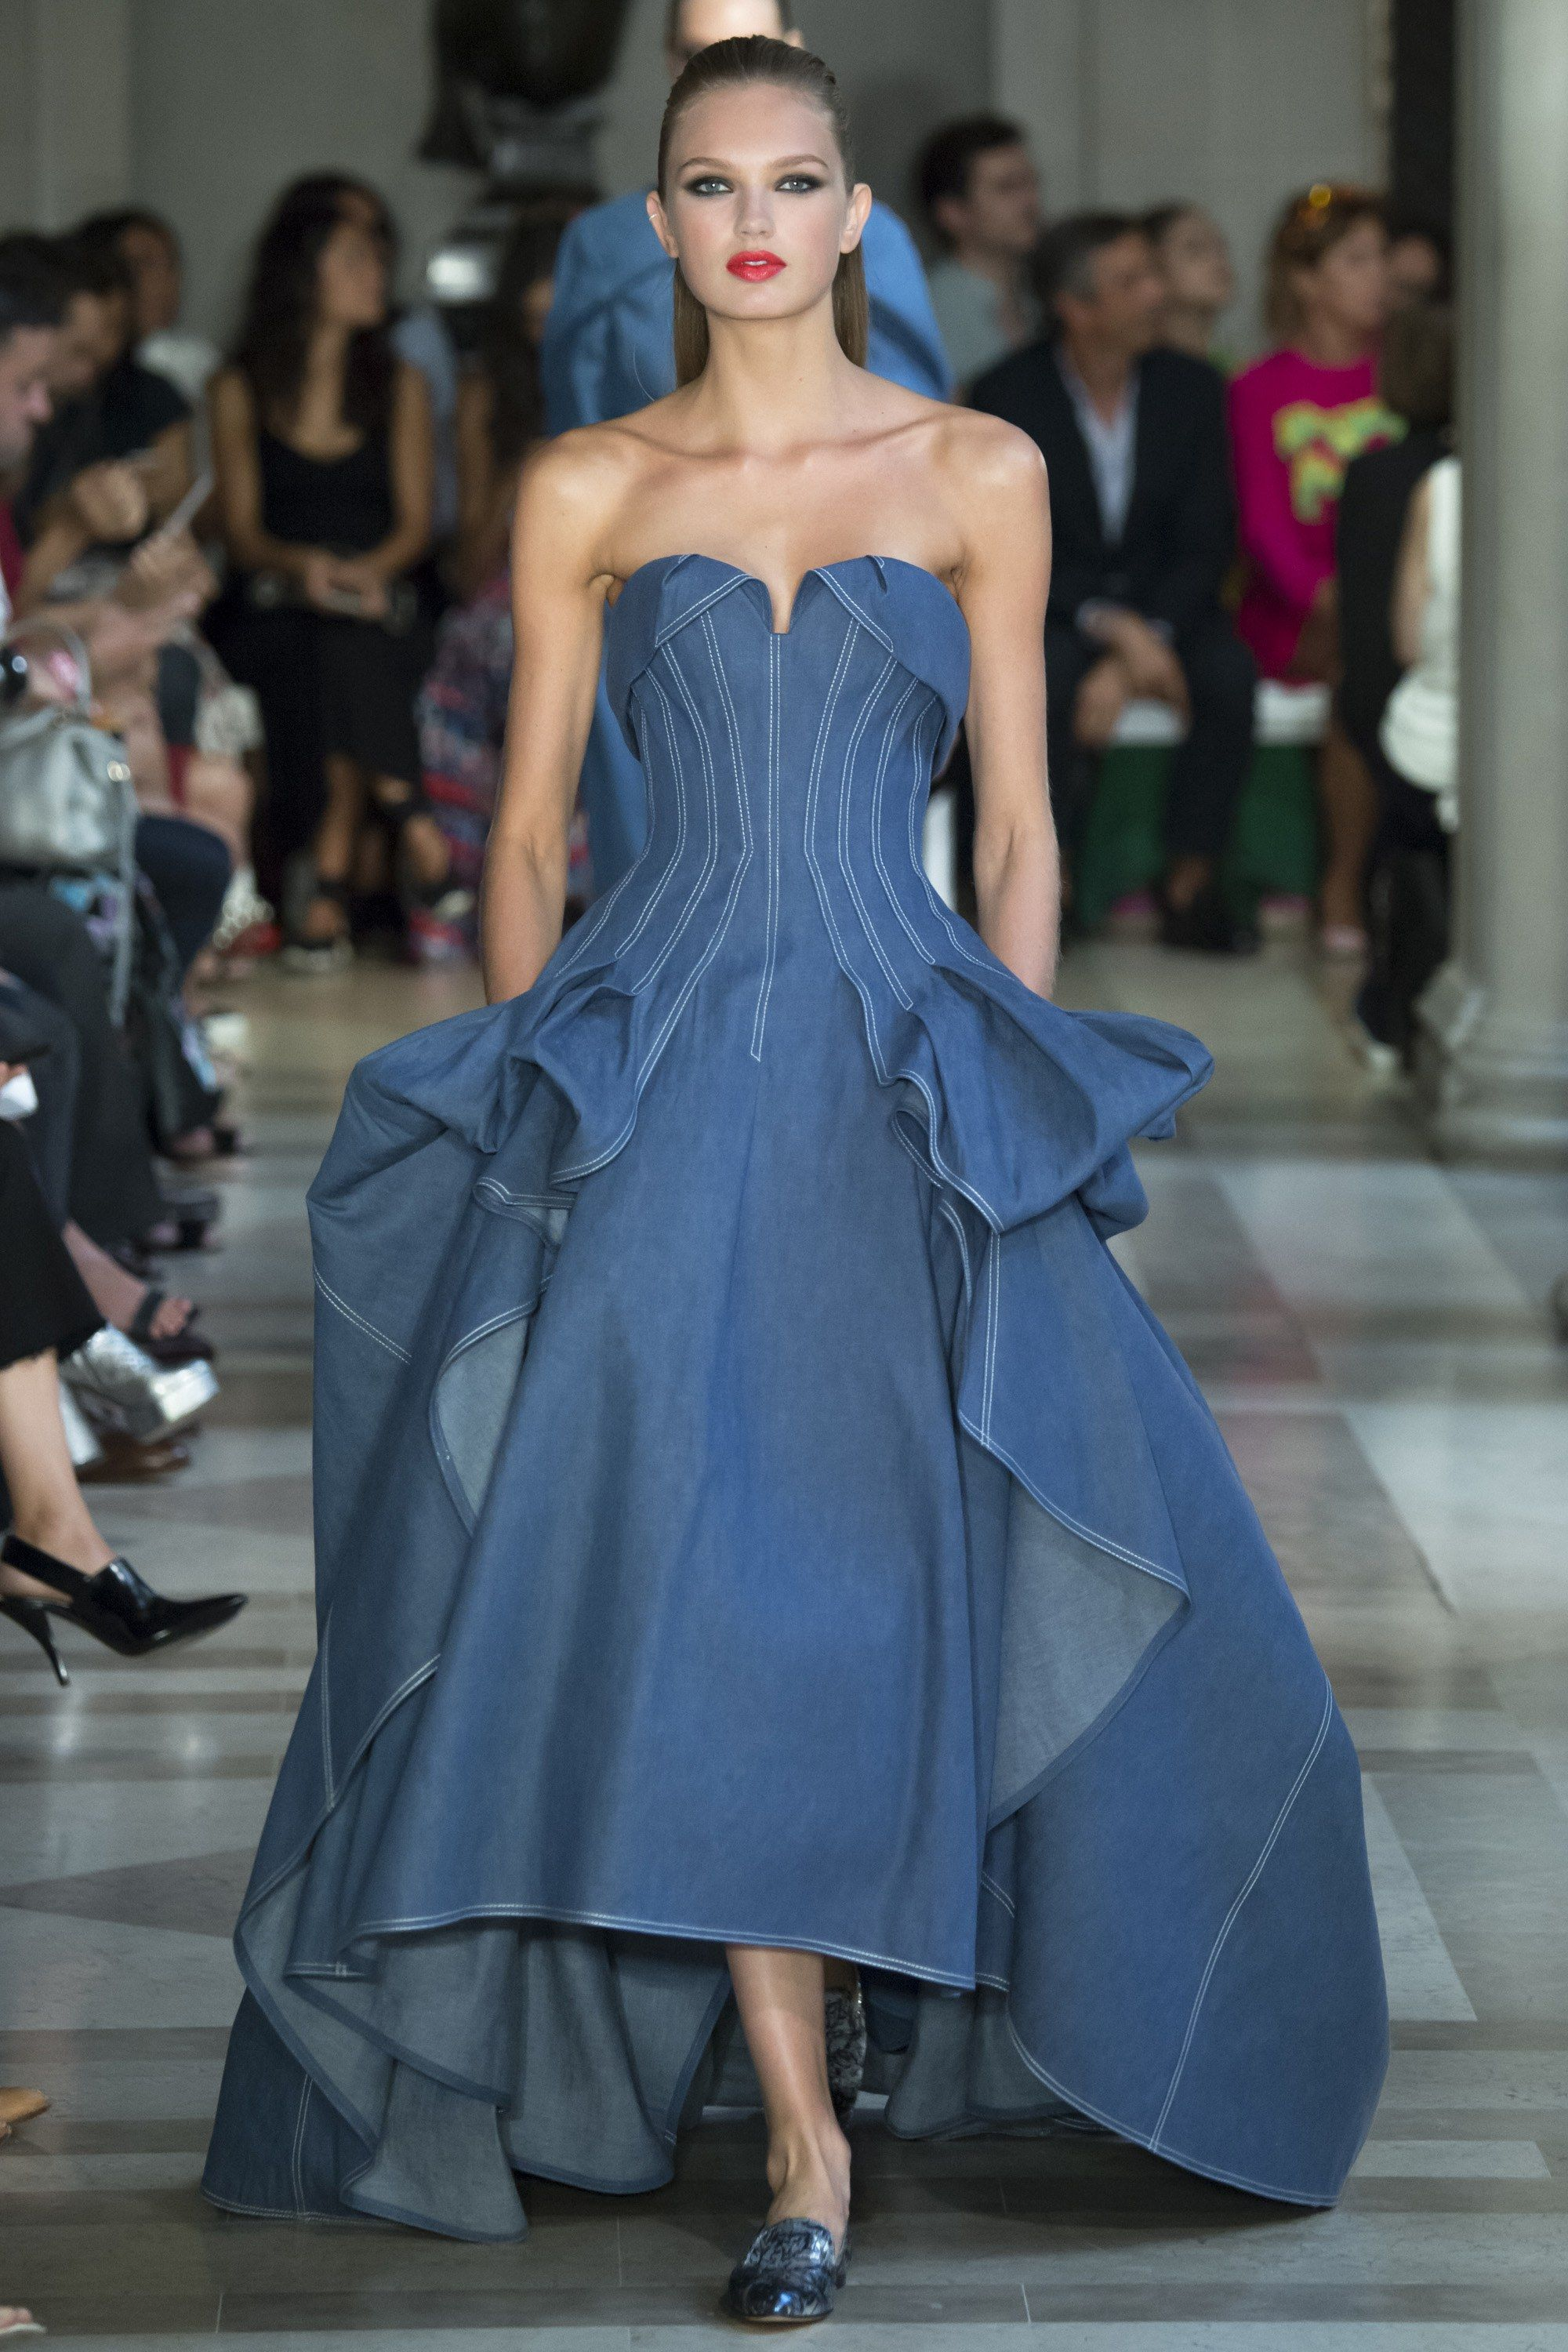 af8a201655d3a View the complete Carolina Herrera Spring 2017 Ready-to-Wear Collection  from New York Fashion Week.